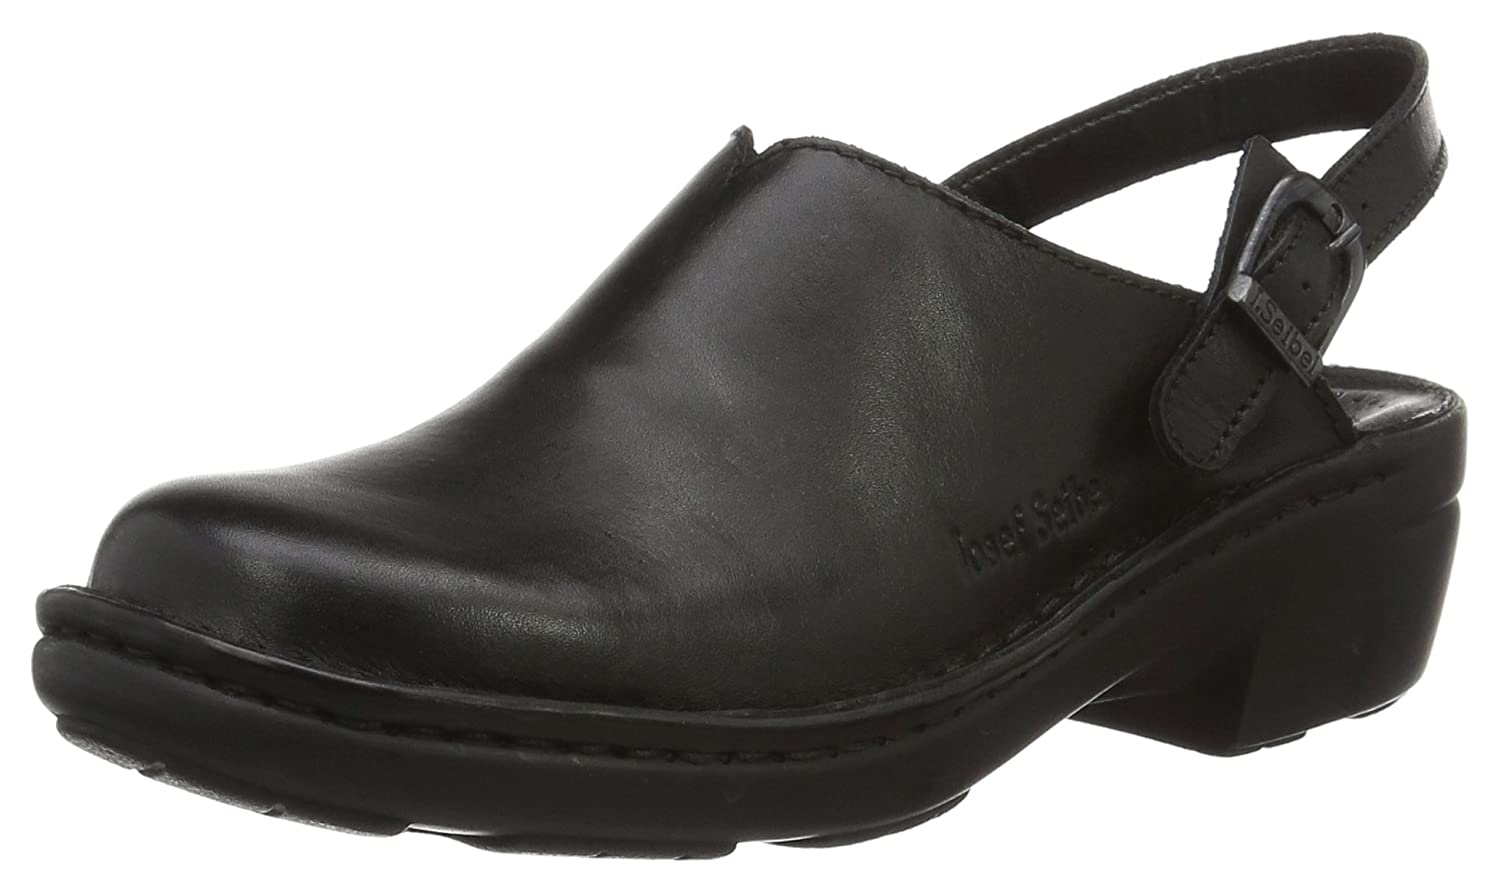 Man/Woman Betsy (Black) B01AGPZHYM Mules Mules B01AGPZHYM & Clogs Ideal gift for all occasions Make full use of materials professional design b2937f